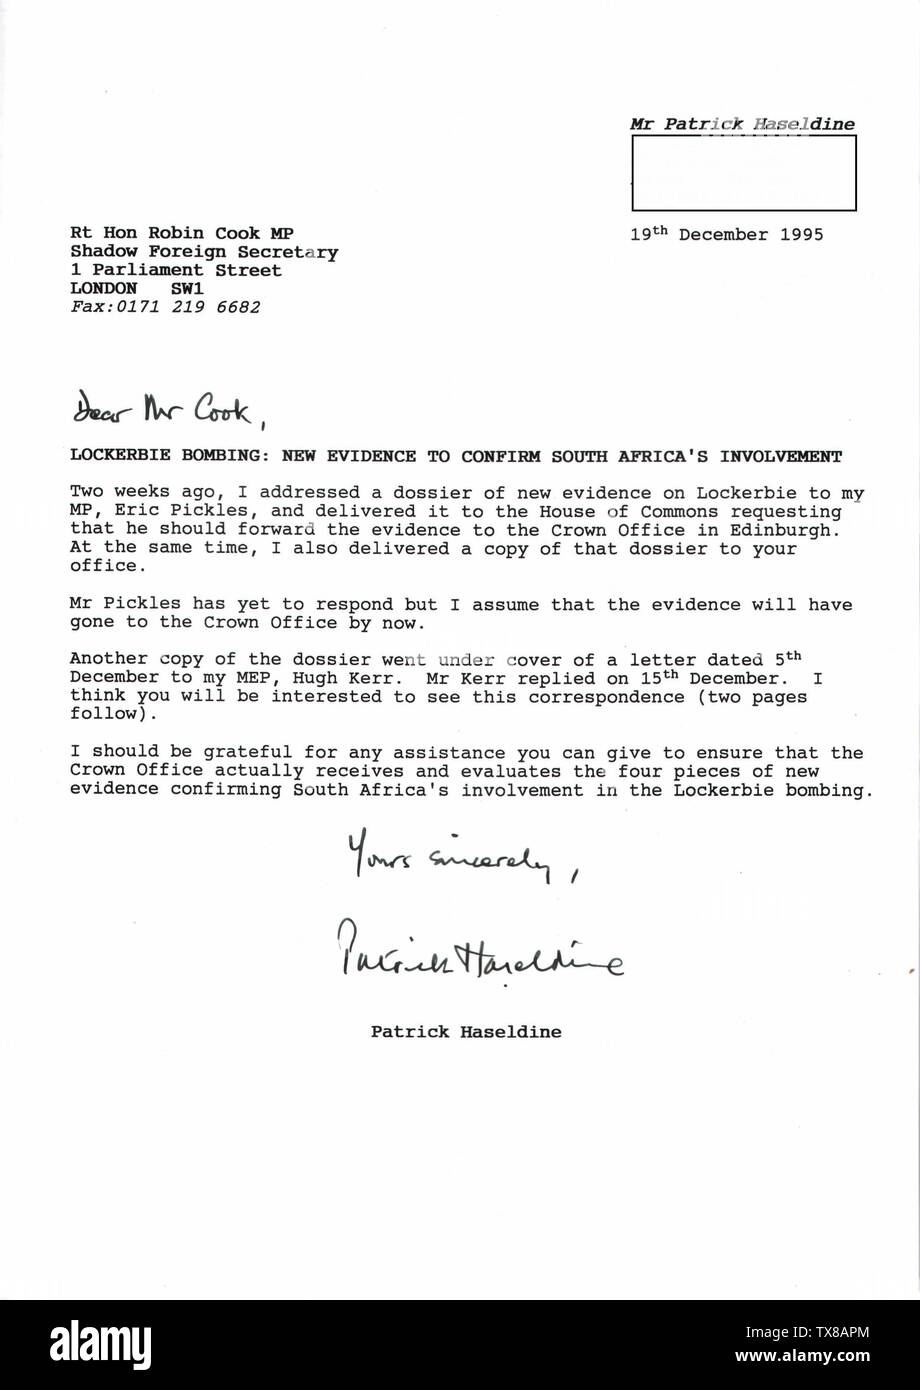 'English: On 19 December 1995, I wrote this letter to Shadow Foreign Secretary Robin Cook asking for his assistance in getting the dossier of new evidence to confirm South Africa's involvement in the Lockerbie bombing (delivered to his office on 4 December 1995) properly considered by the Crown Office in Edinburgh. Mr J A Dunn, Senior Legal Assistant at the Crown Office, eventually replied on 13 February 1996 saying: I have to advise you that the four items which you described as new pieces of evidence do not provide the evidential basis which would be required for bringing charges against any - Stock Image